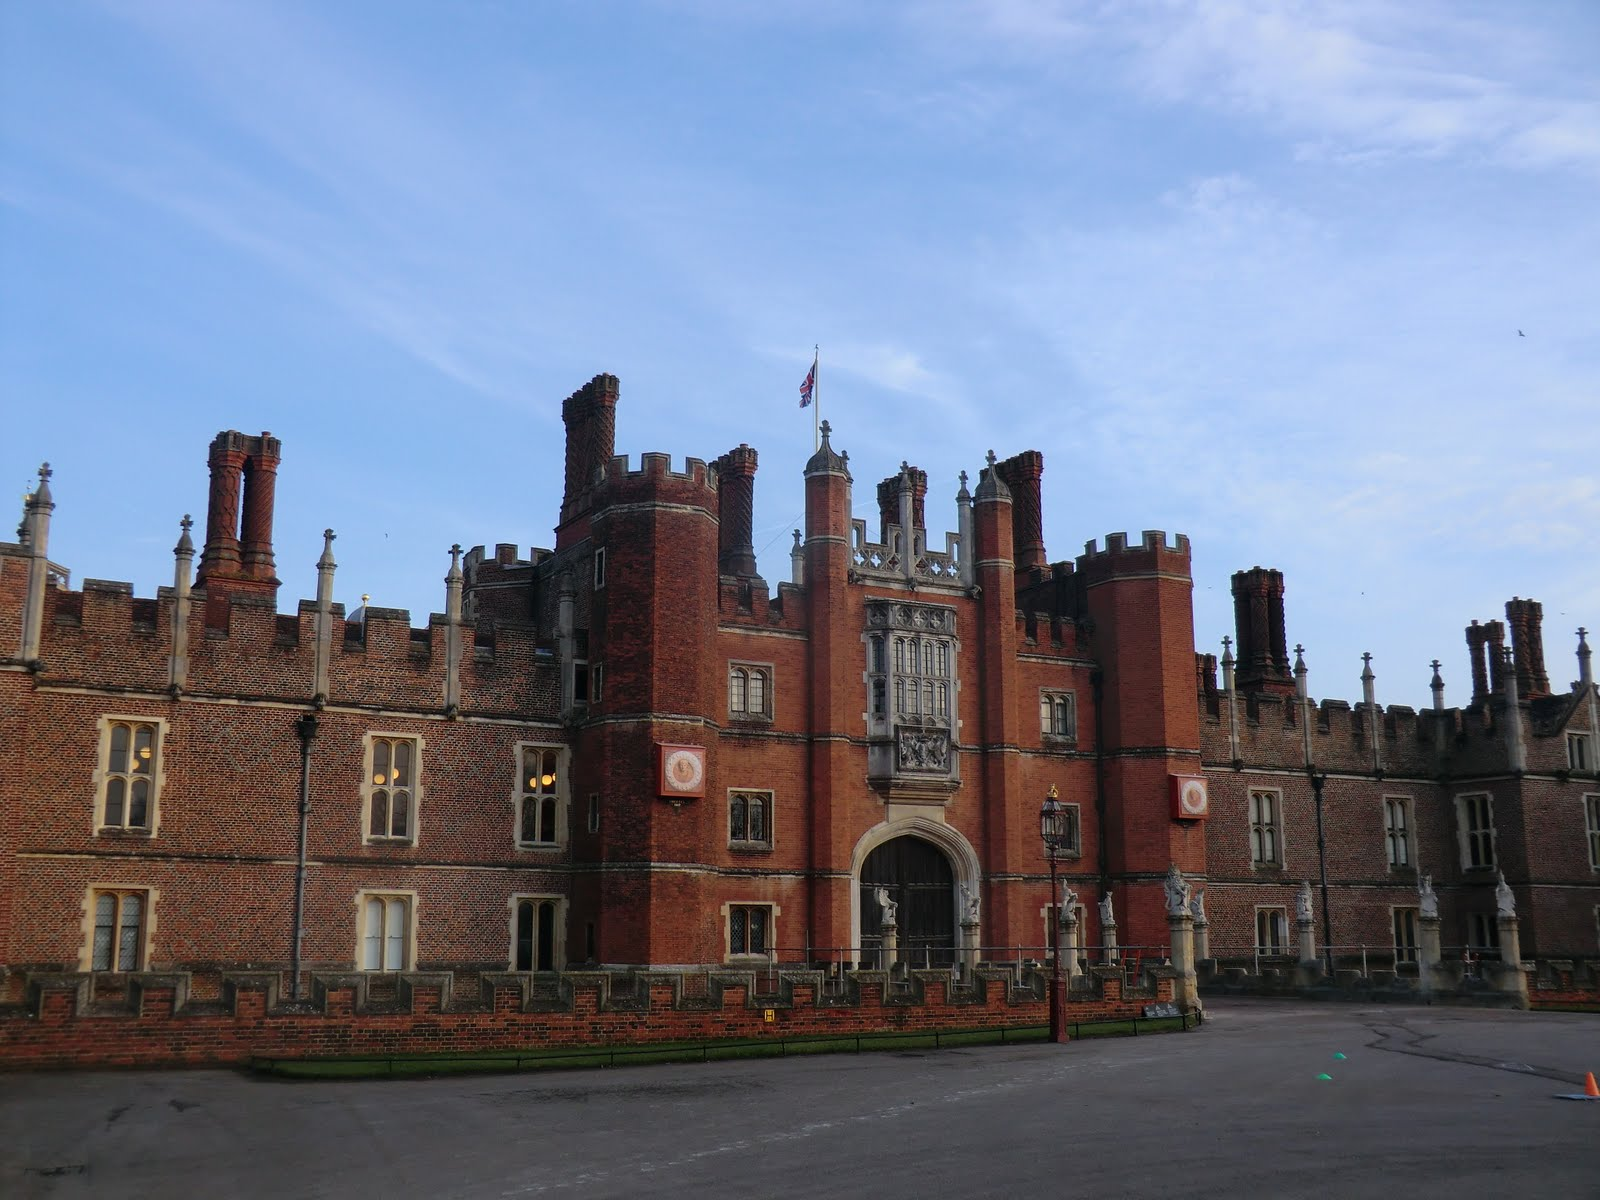 CIMG6617 Tudor Gatehouse, Hampton Court Palace